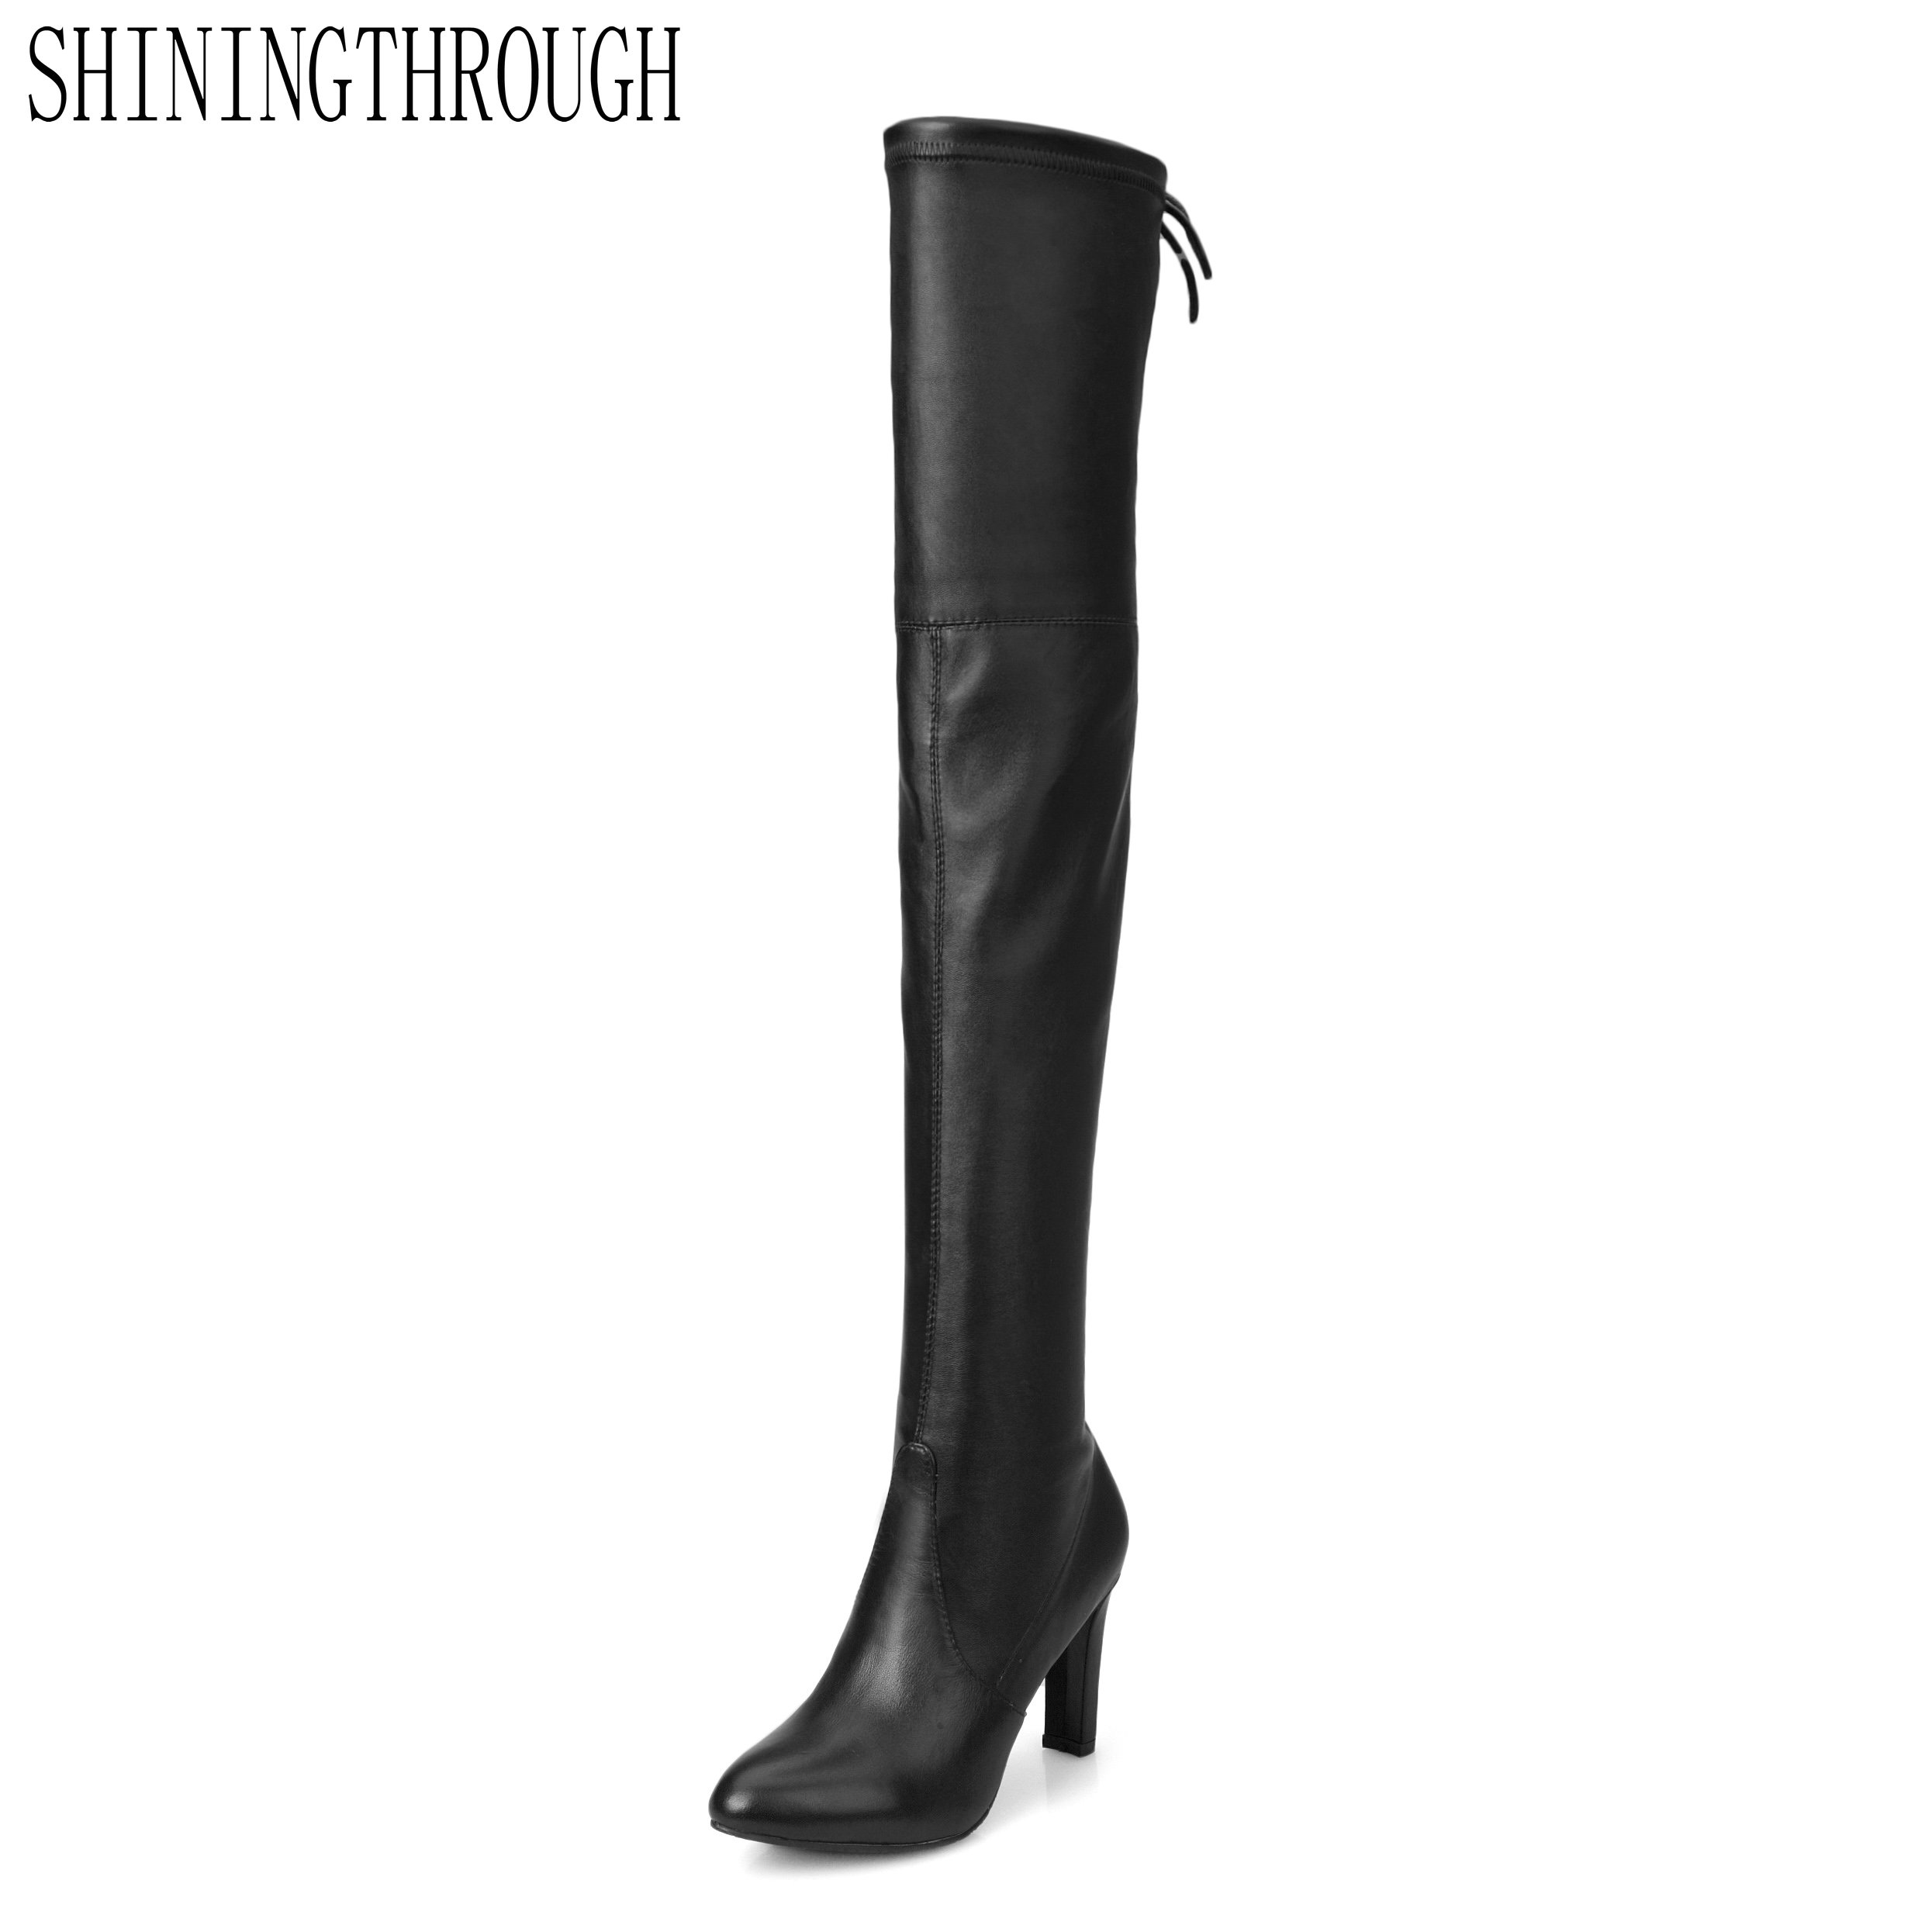 SHININGTHROUGH round toe high heel keep warm square high heel boots over the knee European leather thigh high boots